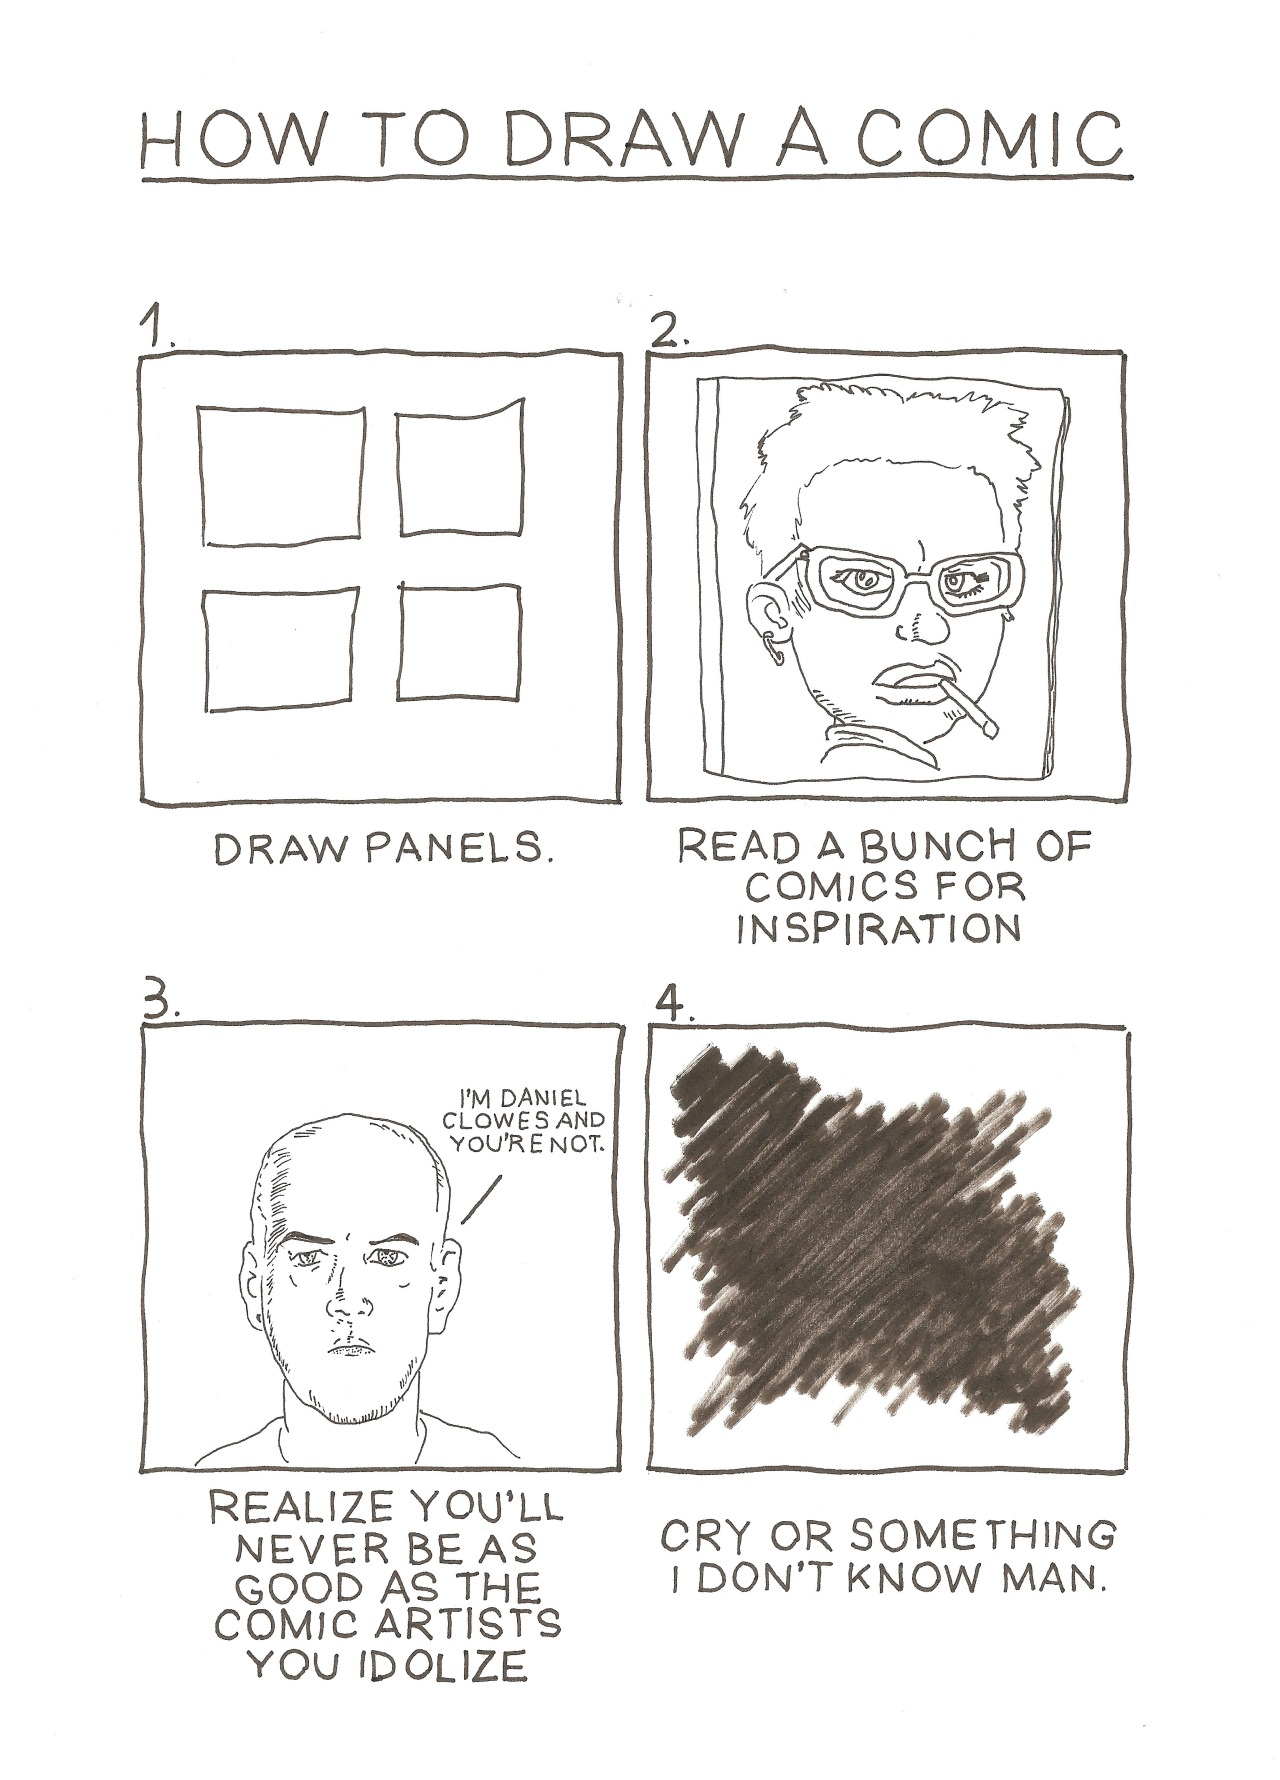 Daniel Clowes inspired fan art by Séamus Gallagher. amajor7:   How to Draw Comics Like Séamus Gallagher Because I'm an Artist and Totally Know What I'm Doing With My Life.